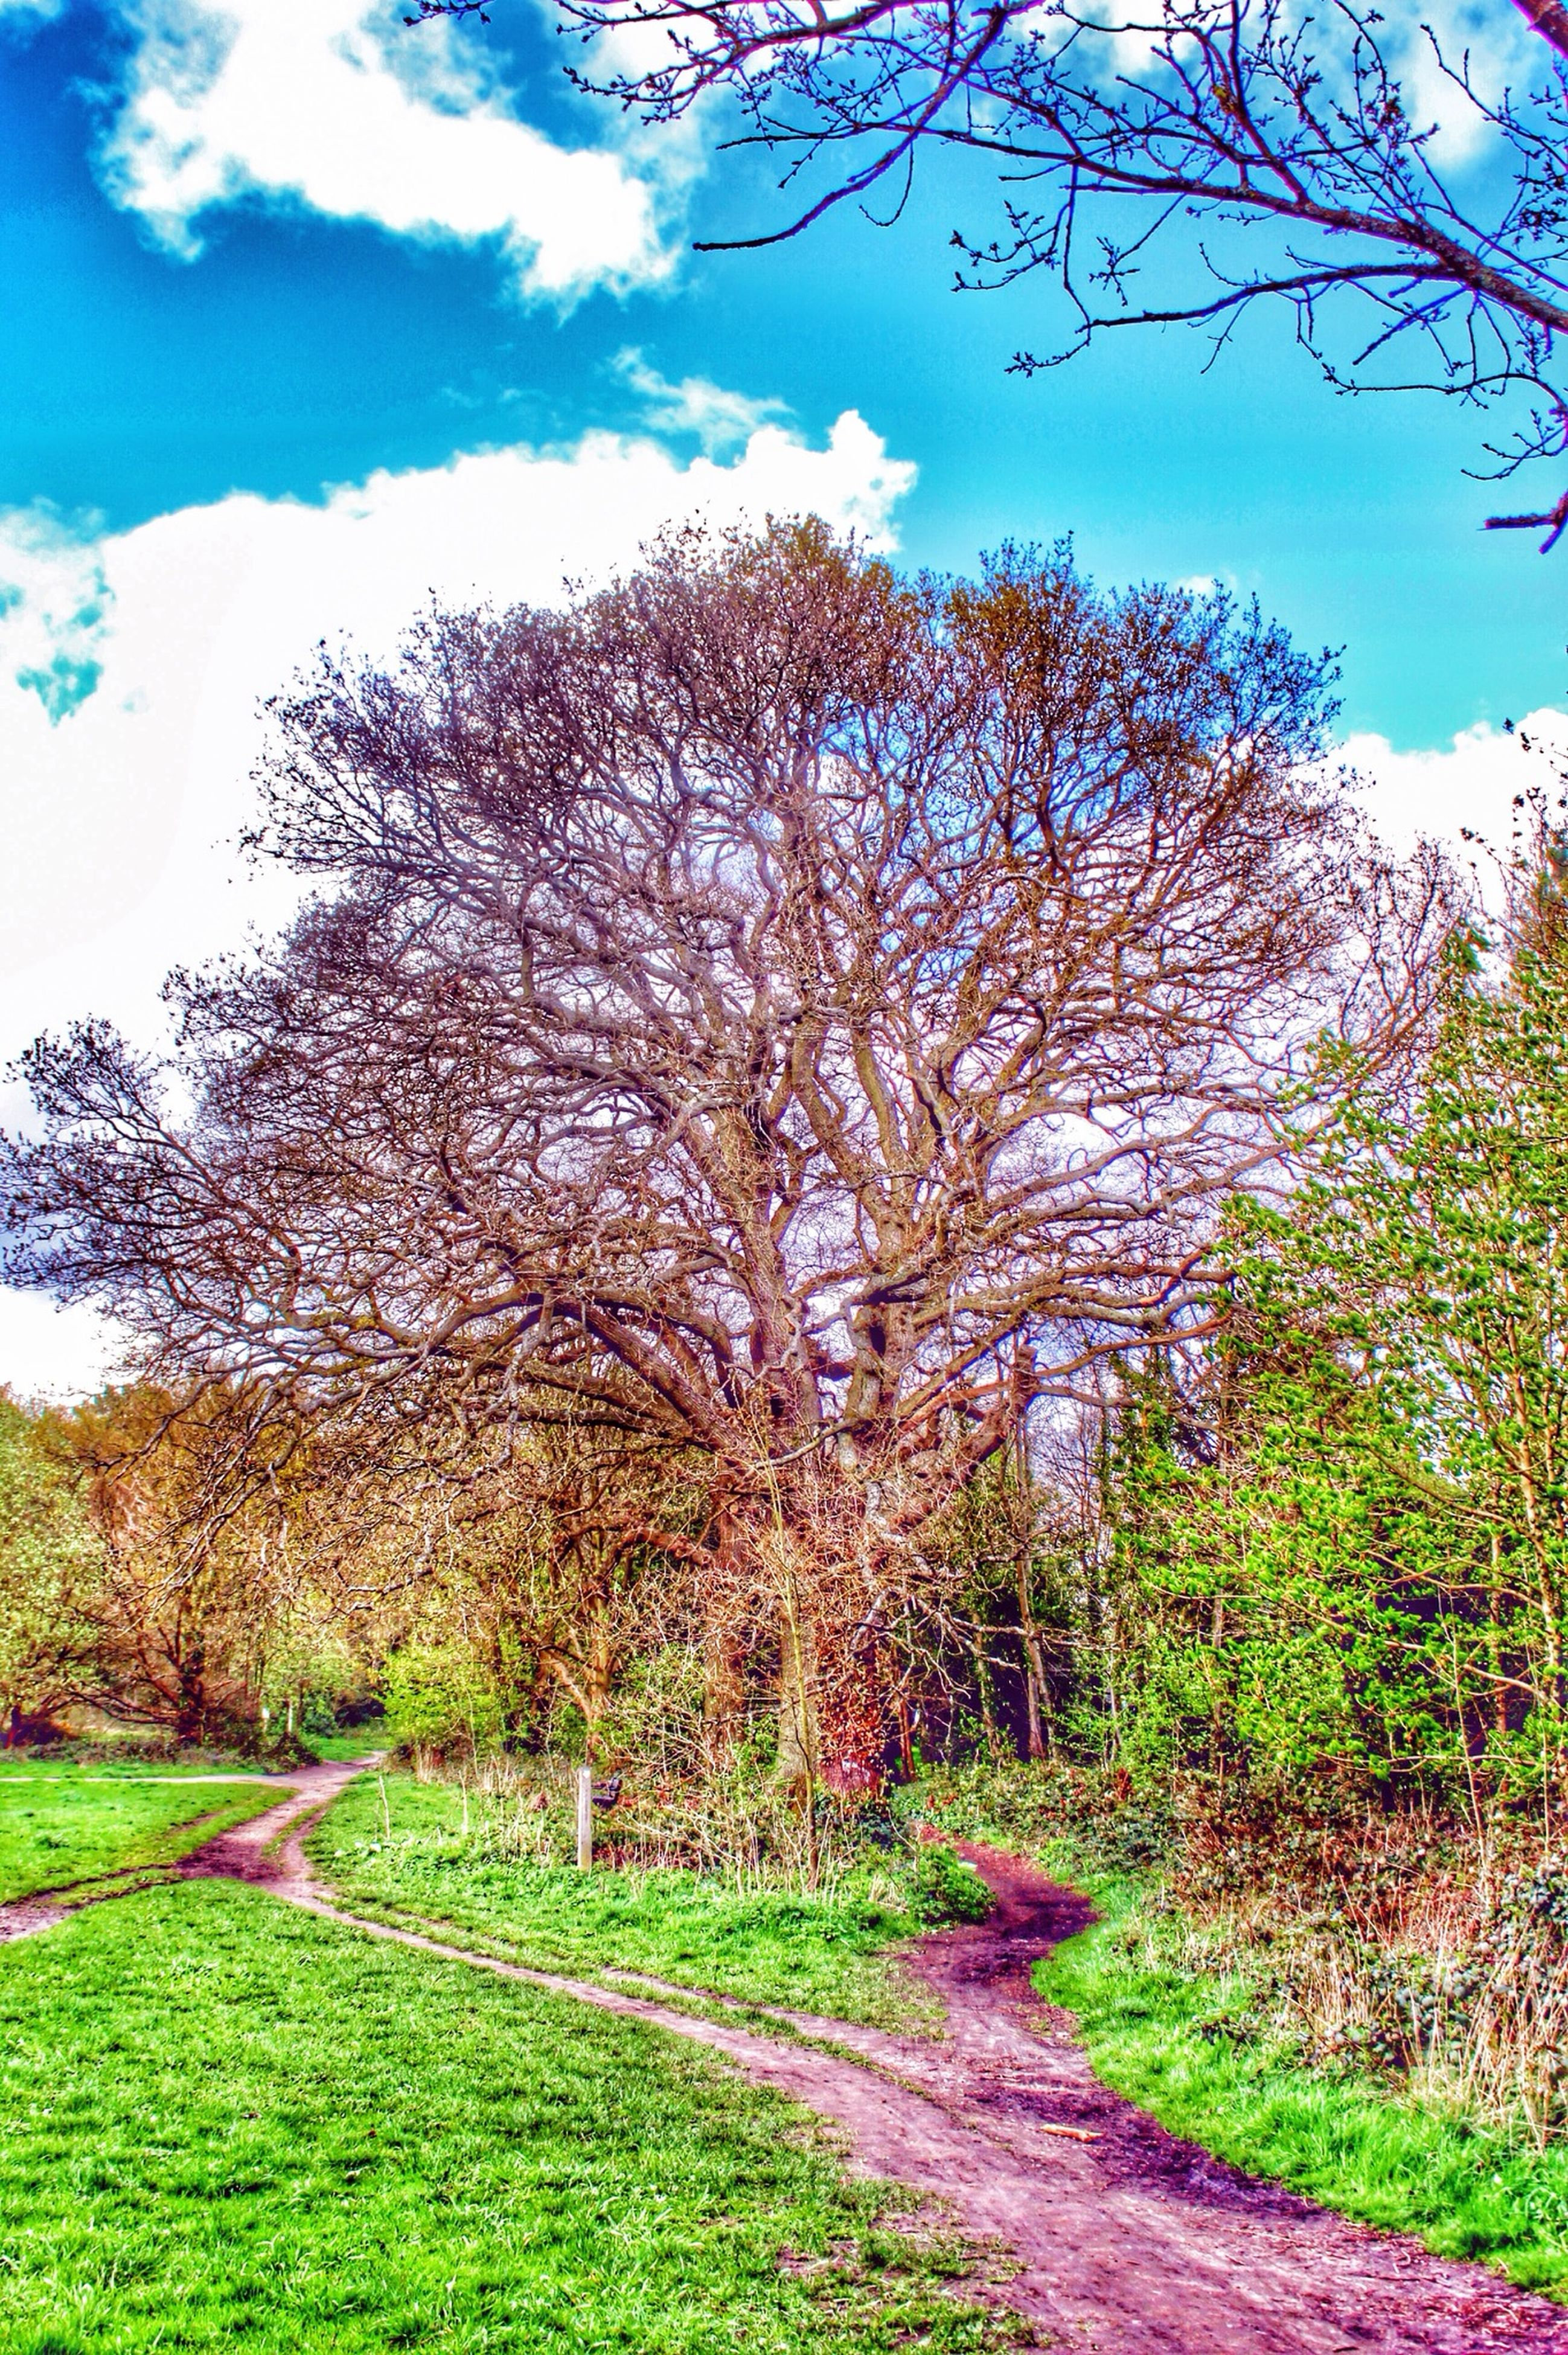 tree, tranquility, sky, the way forward, tranquil scene, landscape, field, bare tree, grass, nature, beauty in nature, scenics, growth, road, rural scene, branch, blue, diminishing perspective, transportation, day